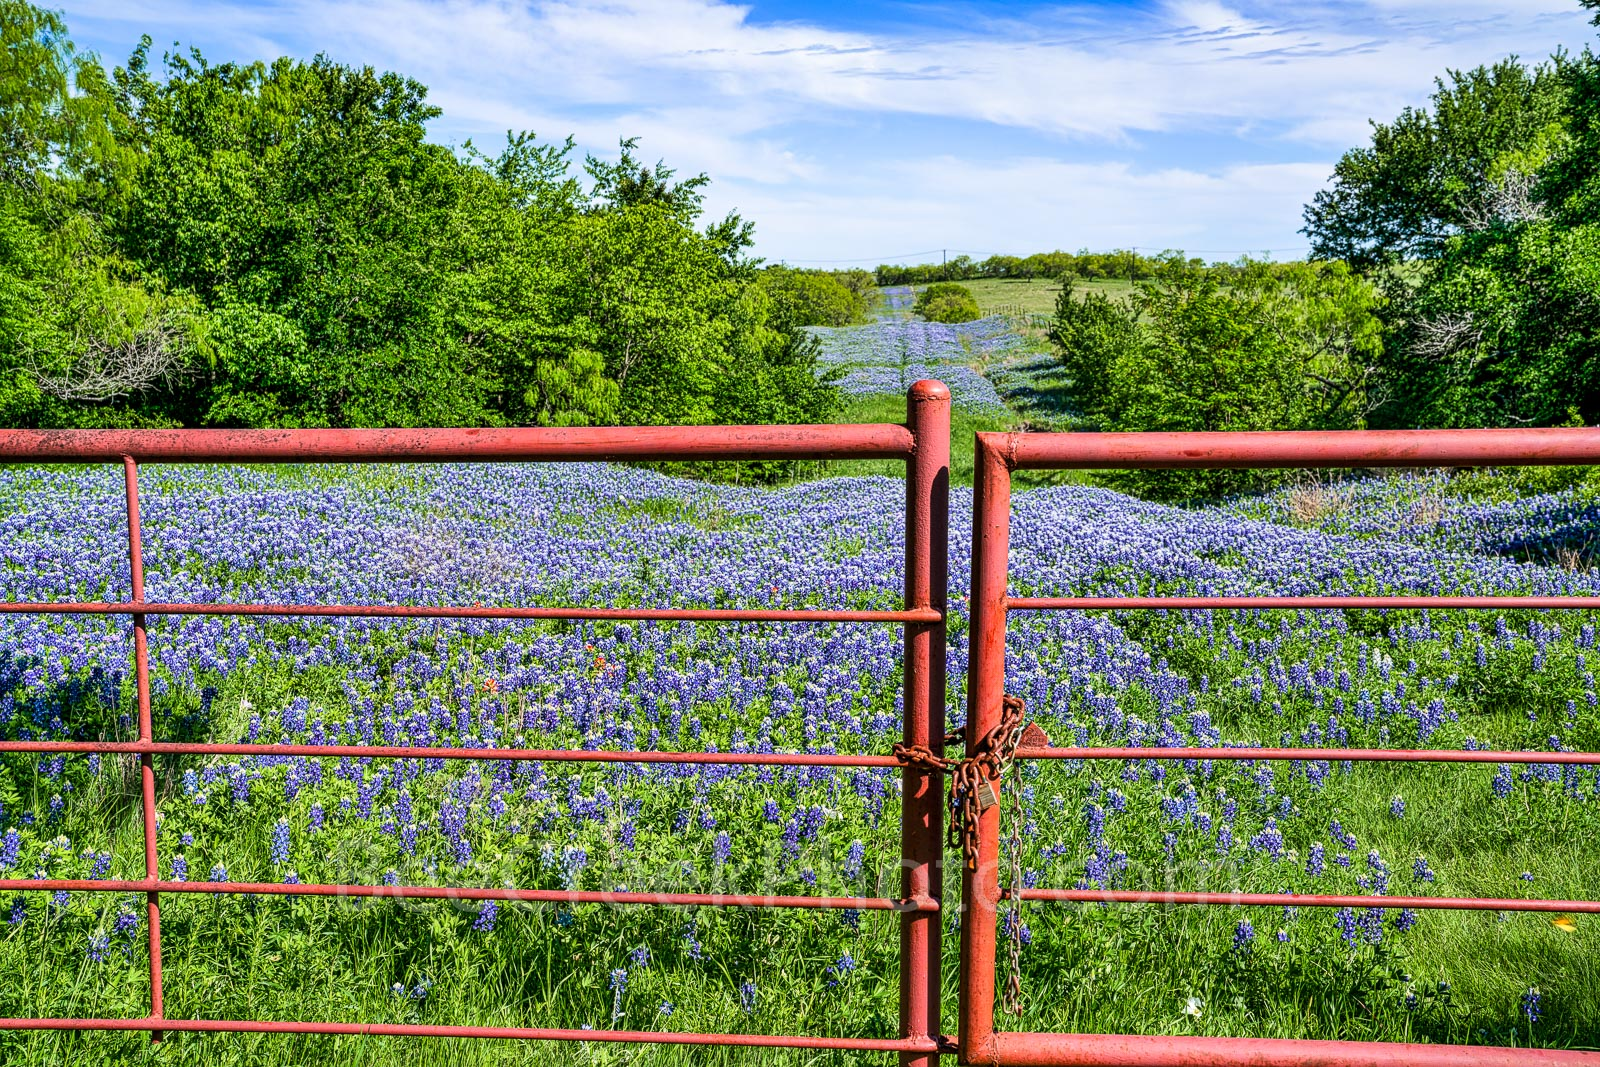 bluebonnets, bluebonnet at the gate, texas, Ennis, road, ranch, wildflowers, image of bluebonnets, pictures of bluebonnets, lupines, , photo